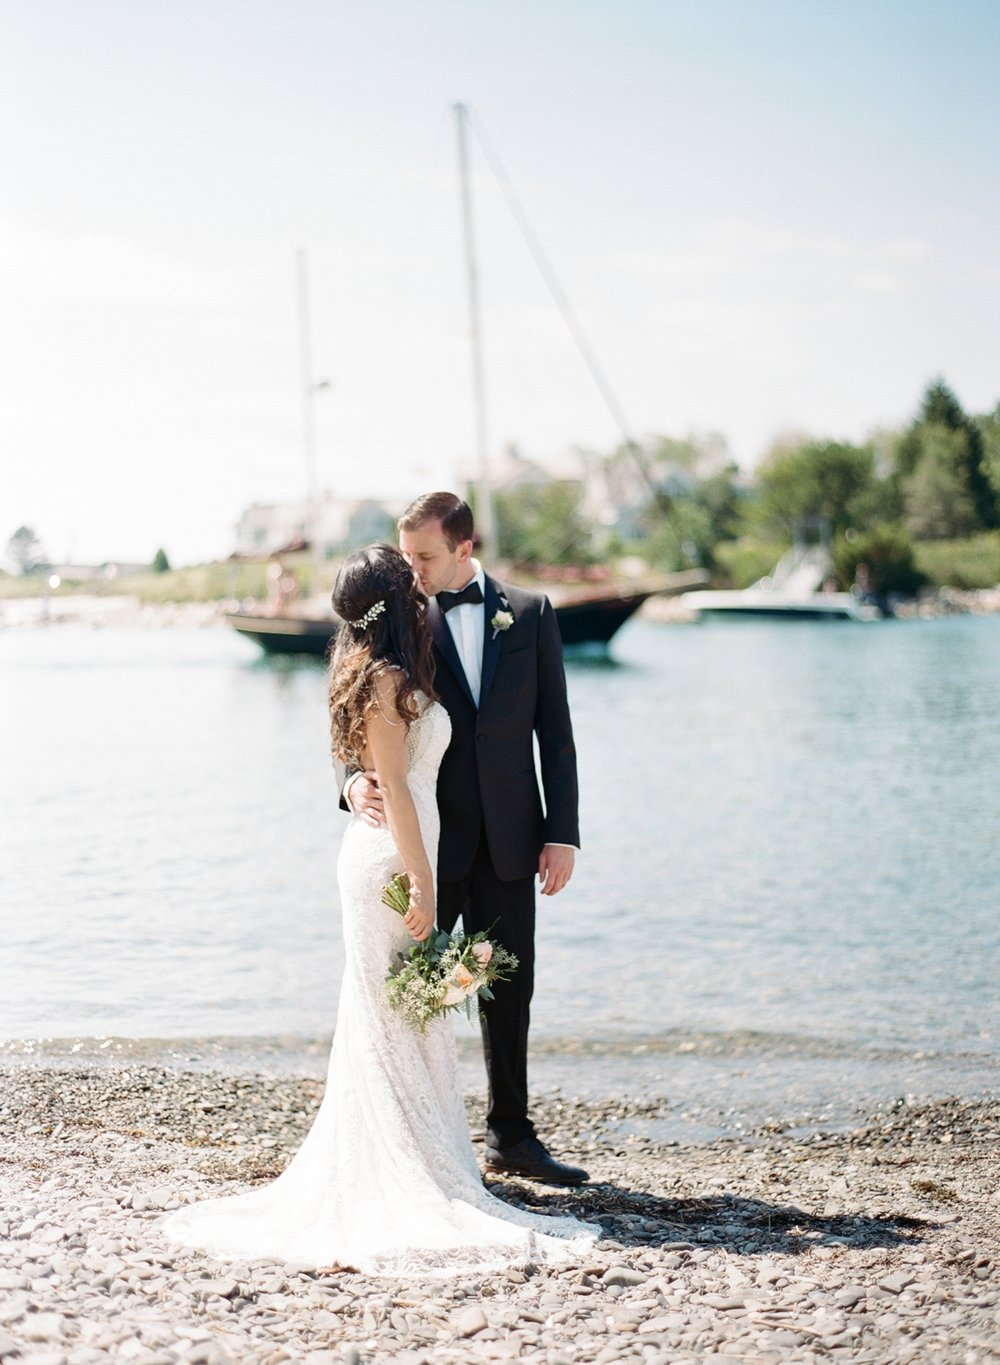 <b>Ashley + Max</b><br><i>Kennebunkport, Maine</i>